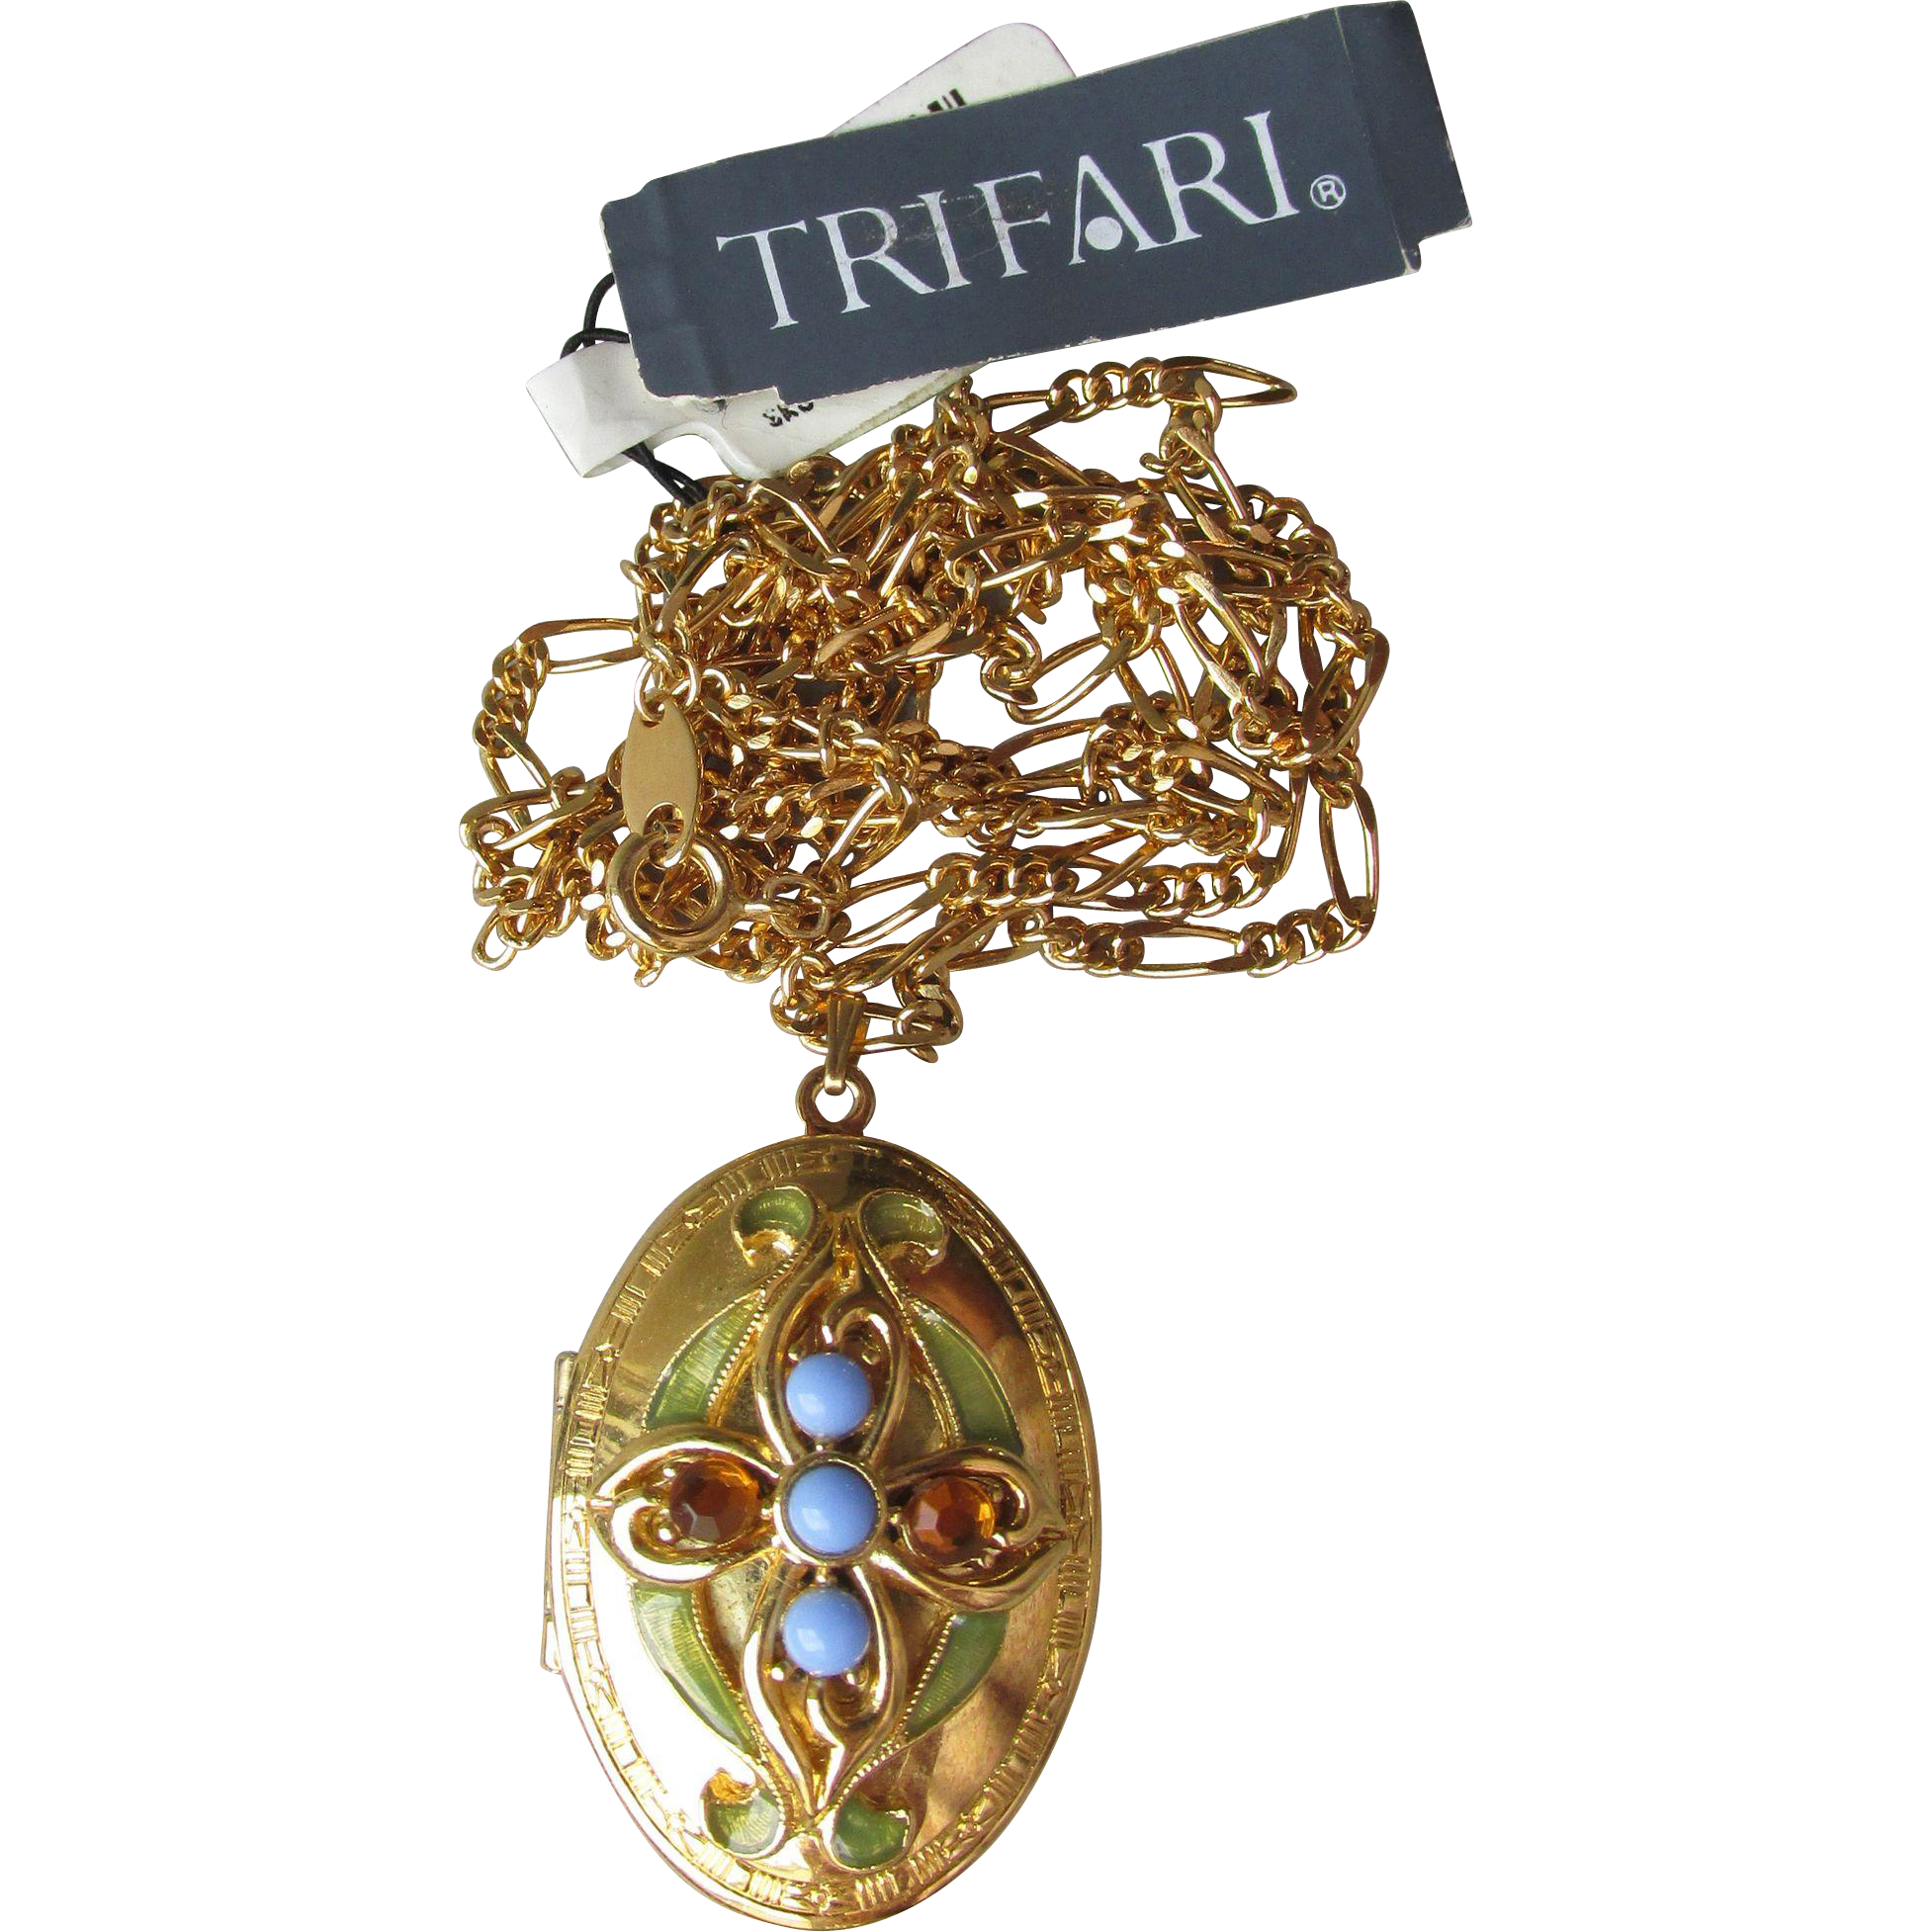 NEW Vintage 1990's Trifari Enamel, Baby Blue Cabochon & Rhinestone Nouveau Revival Locket Necklace